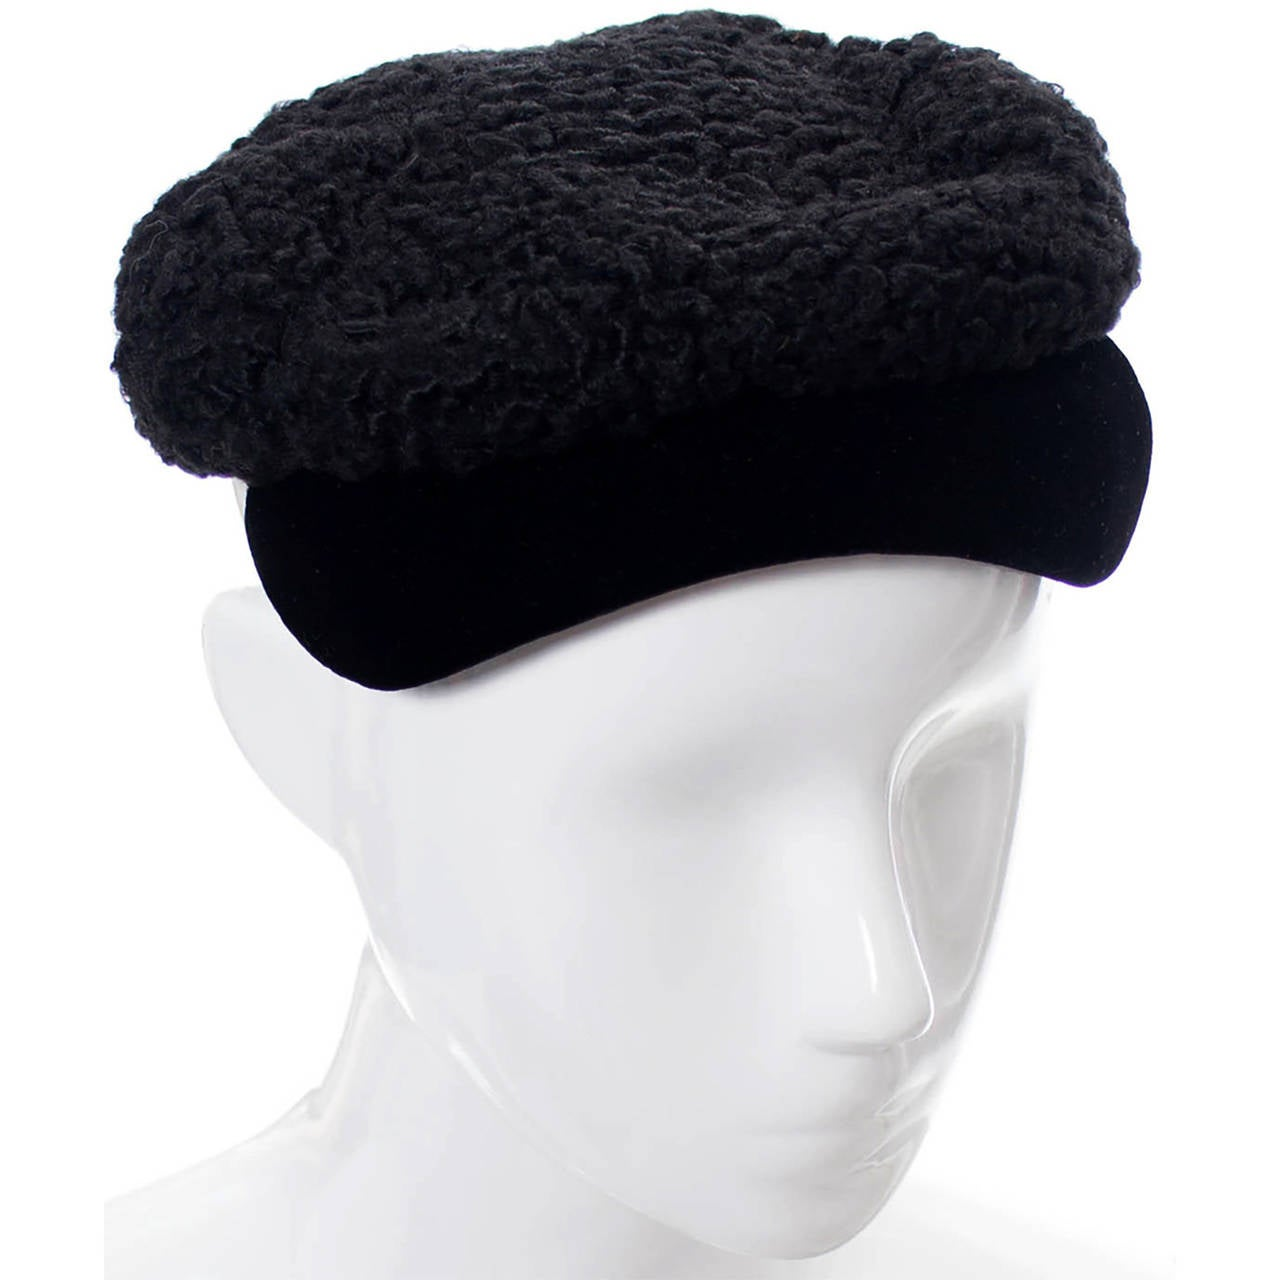 If you collect vintage hats or specifically love the designer Hattie Carnegie, you will adore this little curly lambswool vintage cap with black velvet brim! From a prominent estate, you'll find it in excellent condition! This vintage hat measures